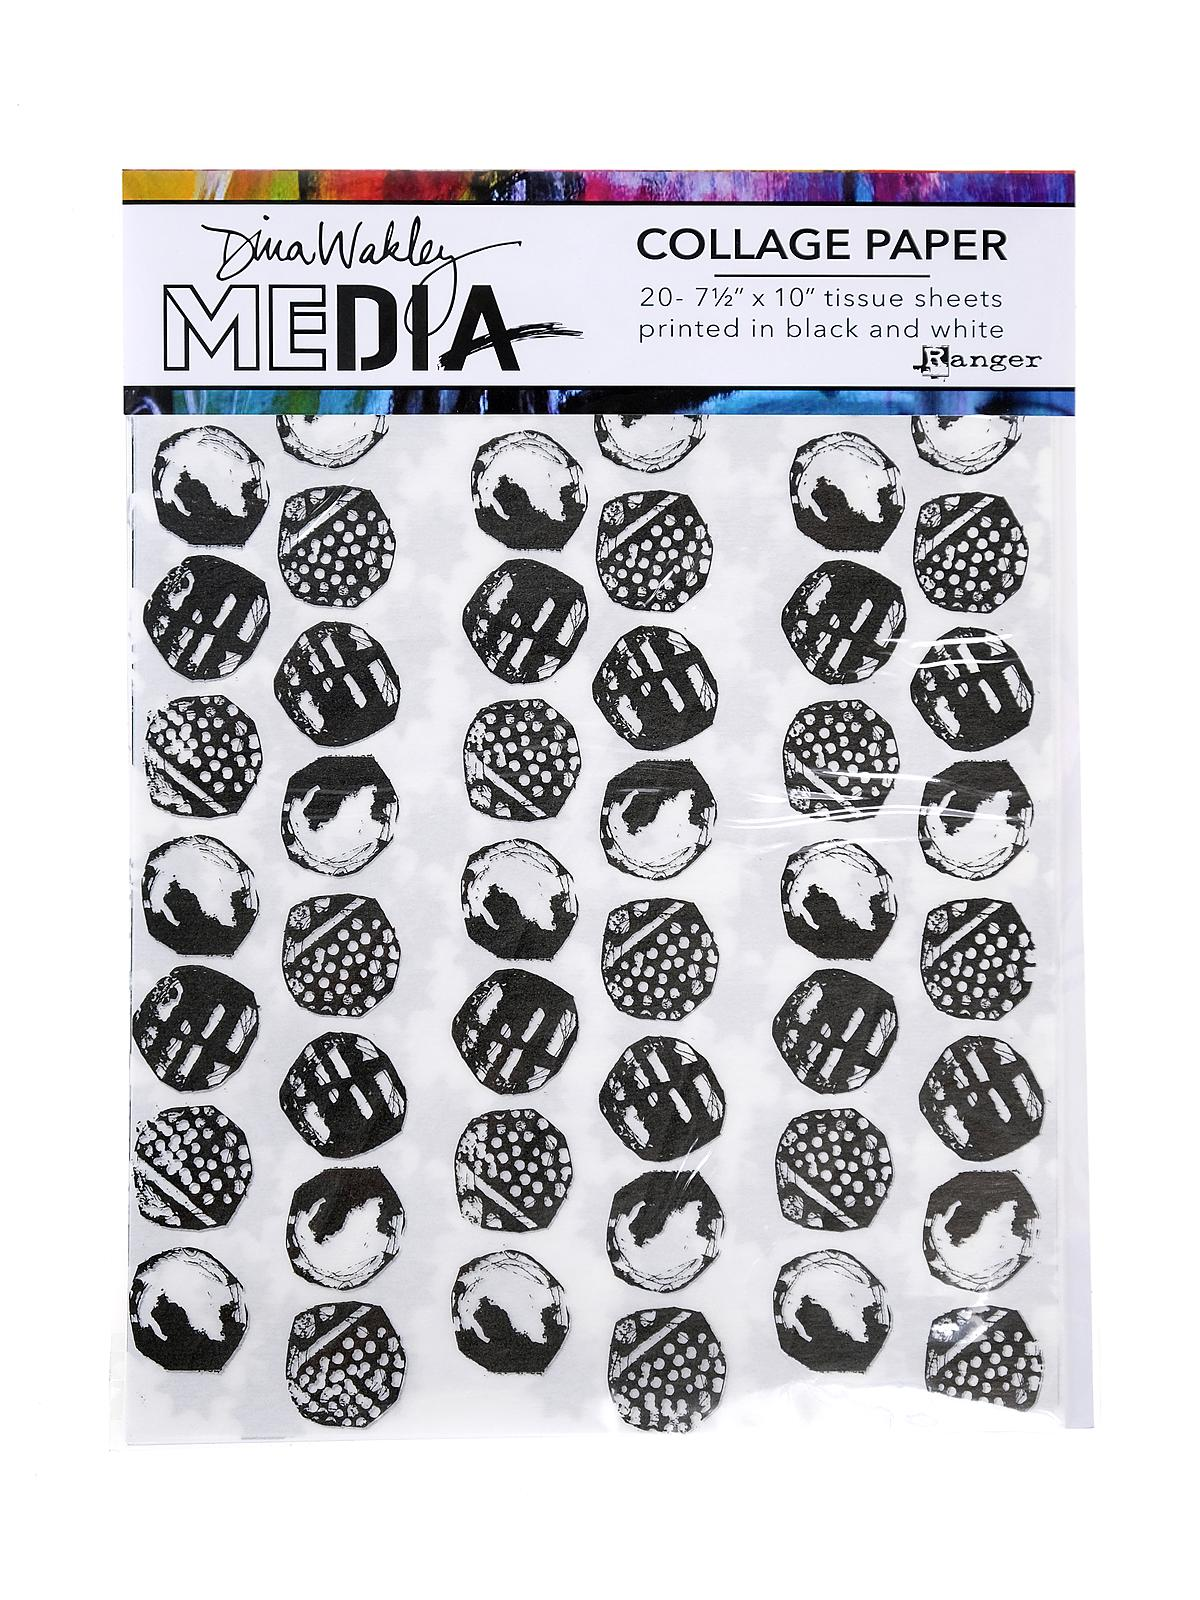 Dina Wakley Media Collage Papers